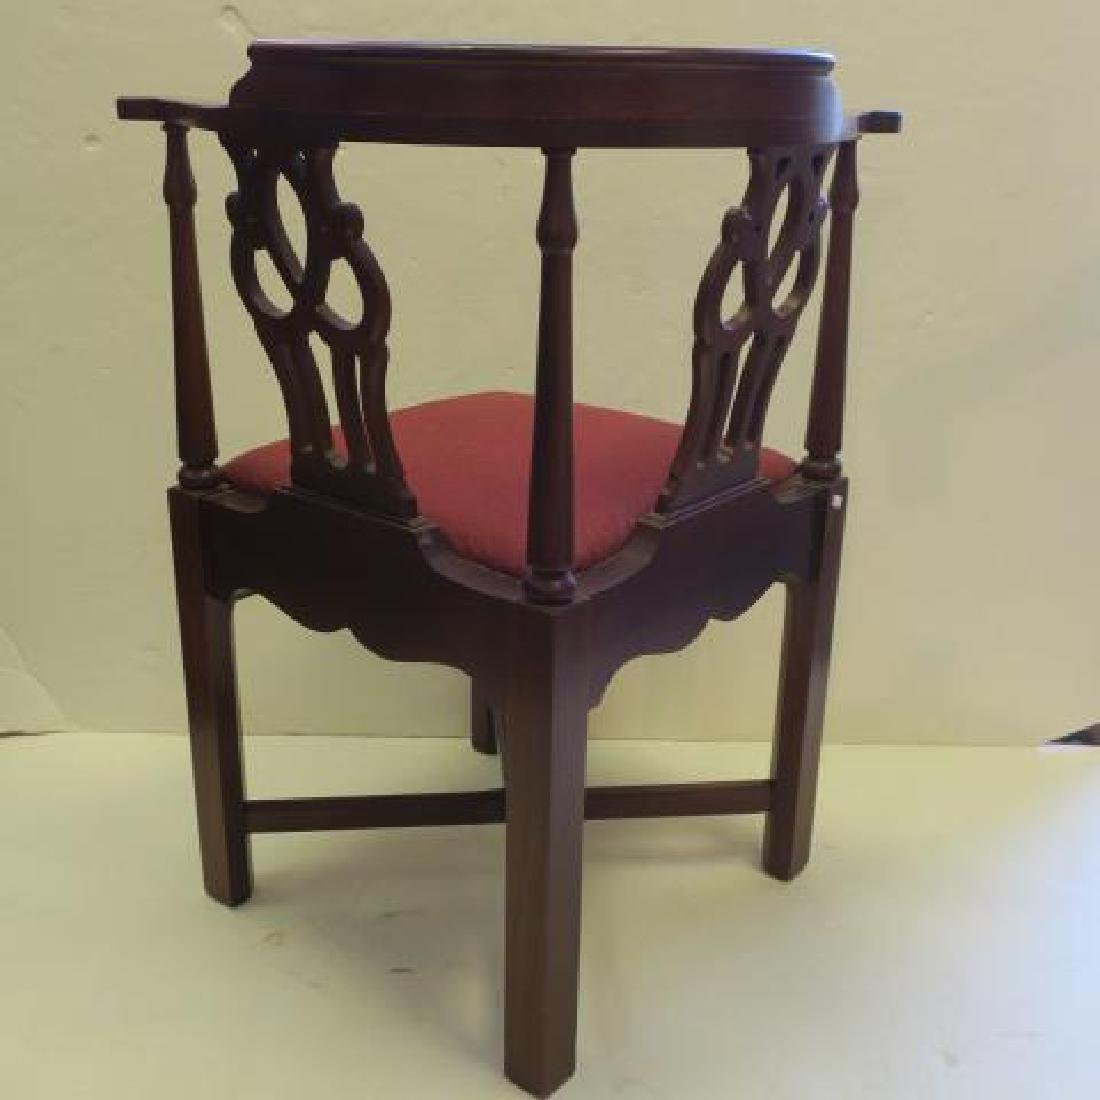 Mahogany Chippendale Style Corner Chair: - 3